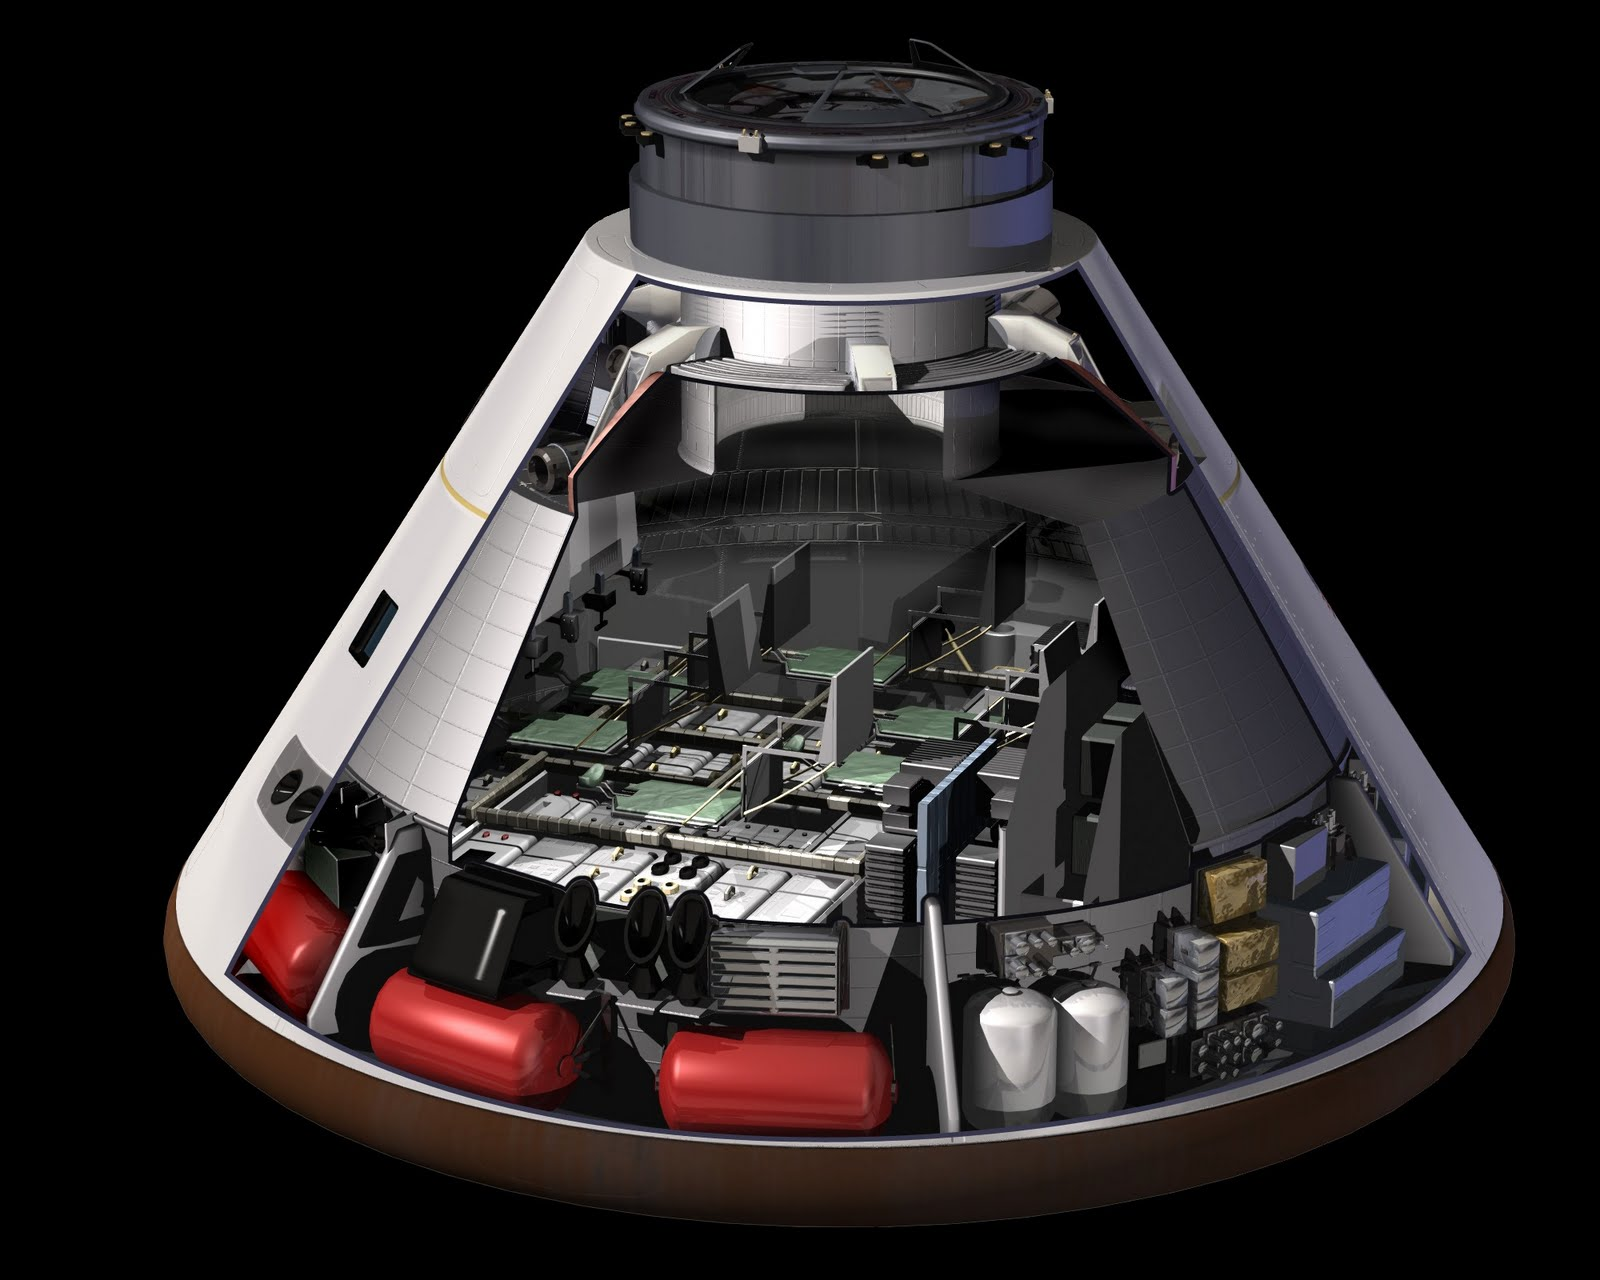 spacecraft cutaway - photo #17